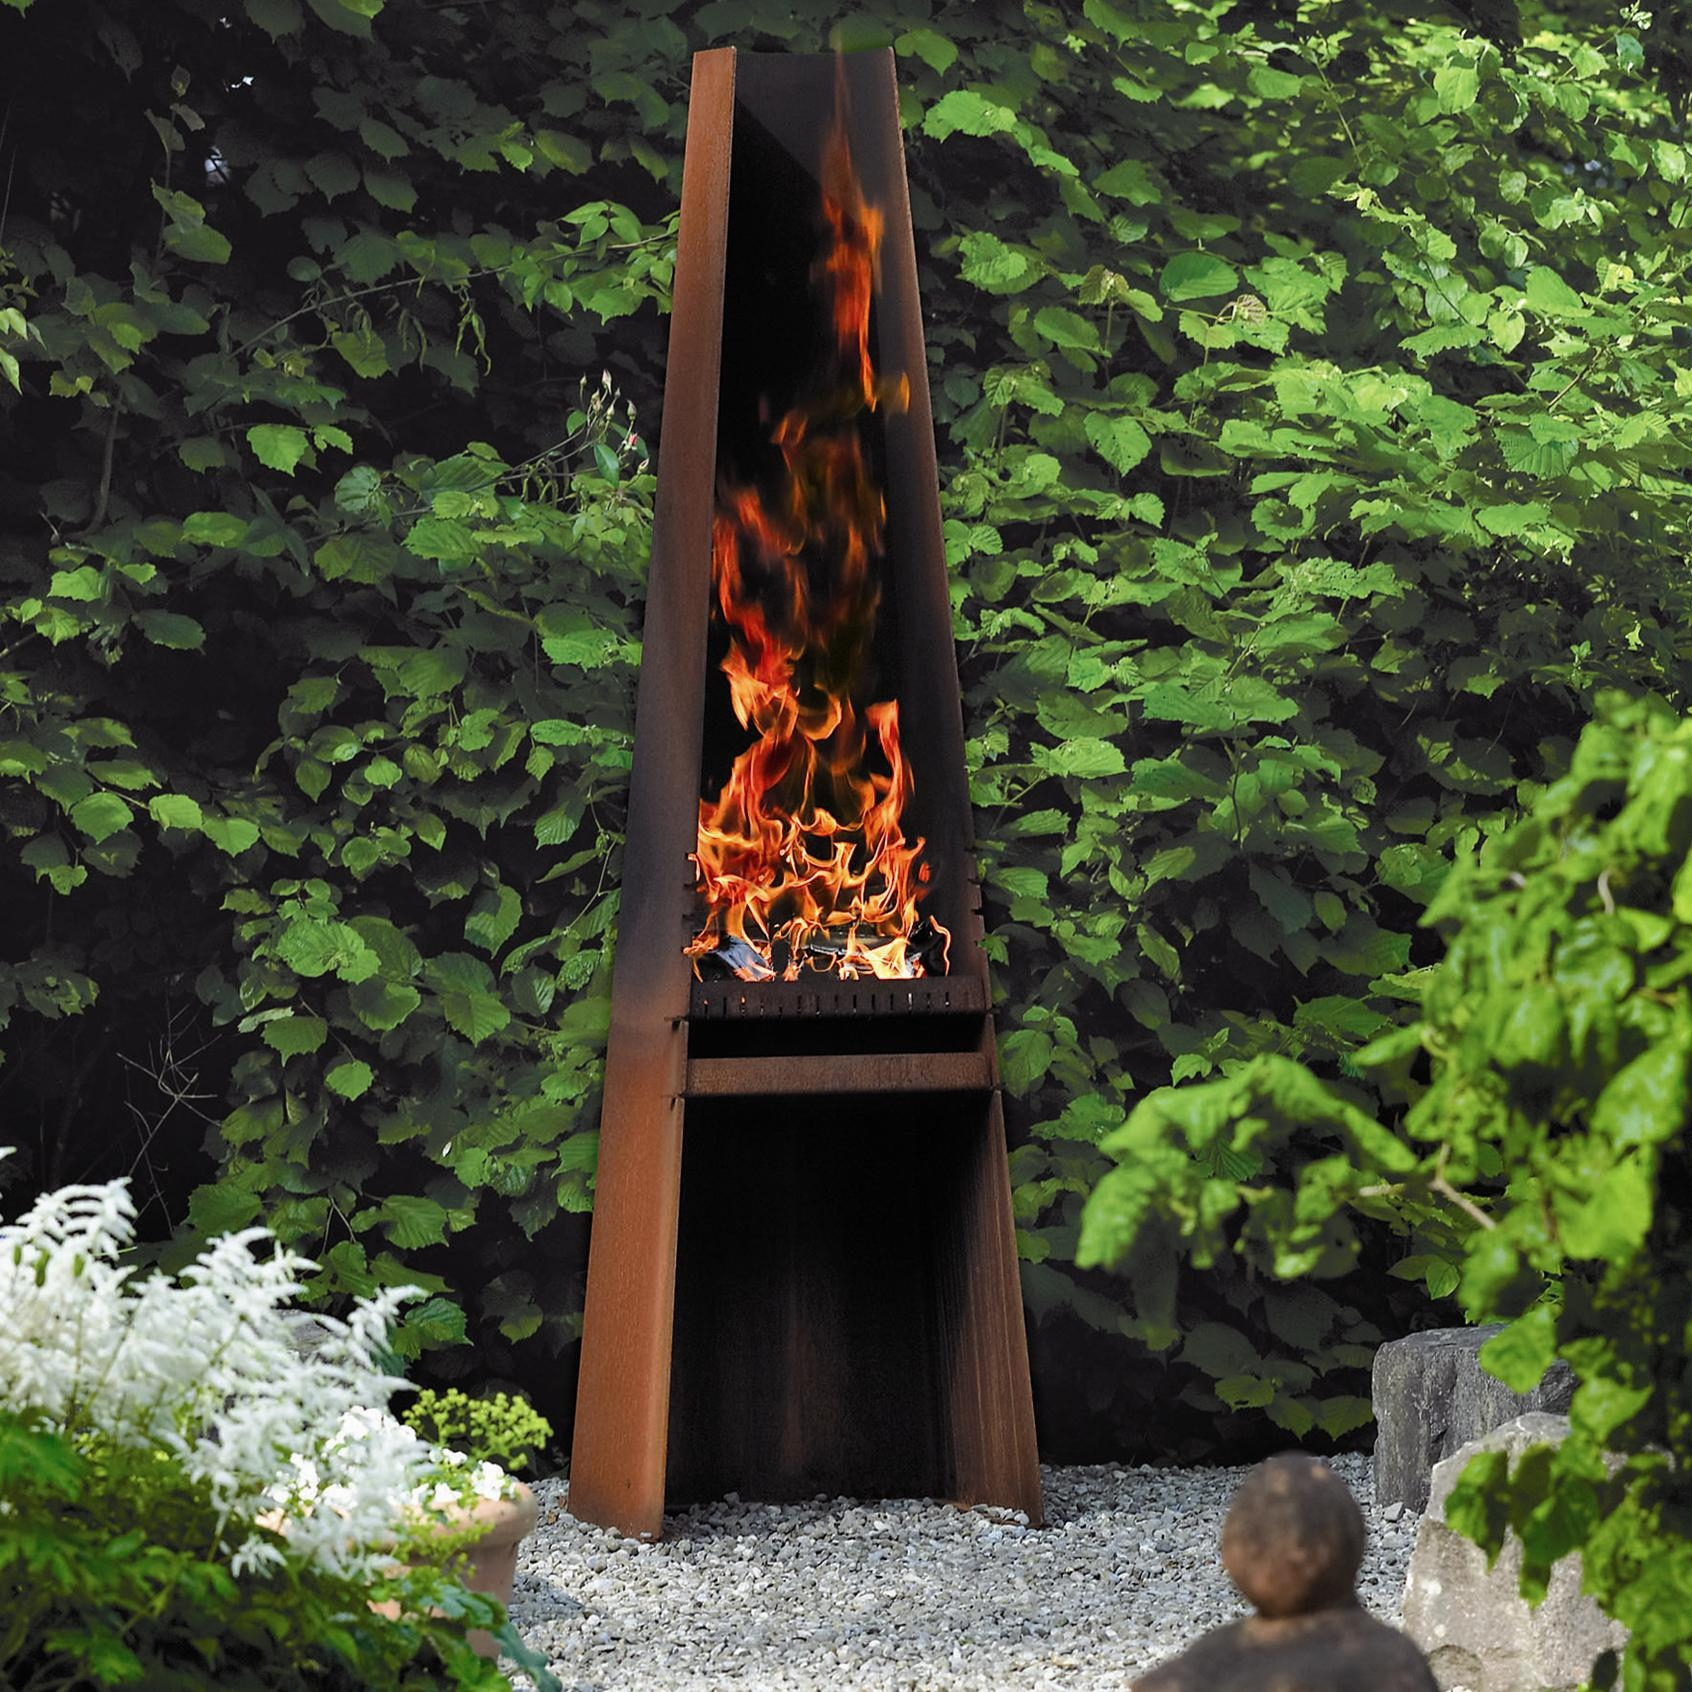 Image of: Rais Gizeh Outdoor Wood Fireplace And Grill For Sale Intended For Outdoor Wood Fireplace Design Outdoor Wood Fireplace Designs